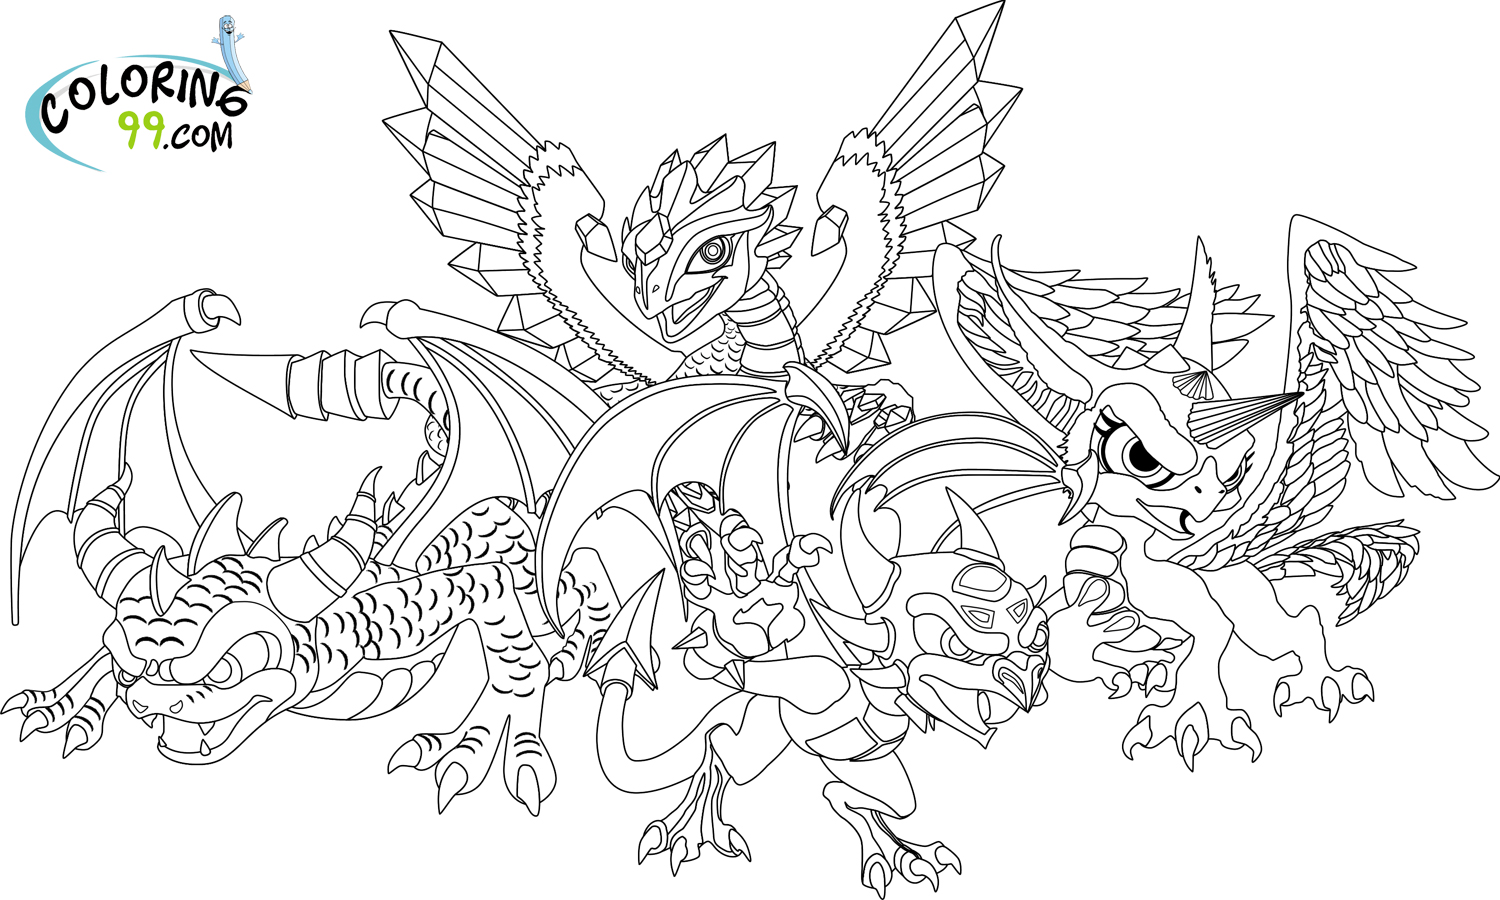 lego elves coloring pages - photo#28